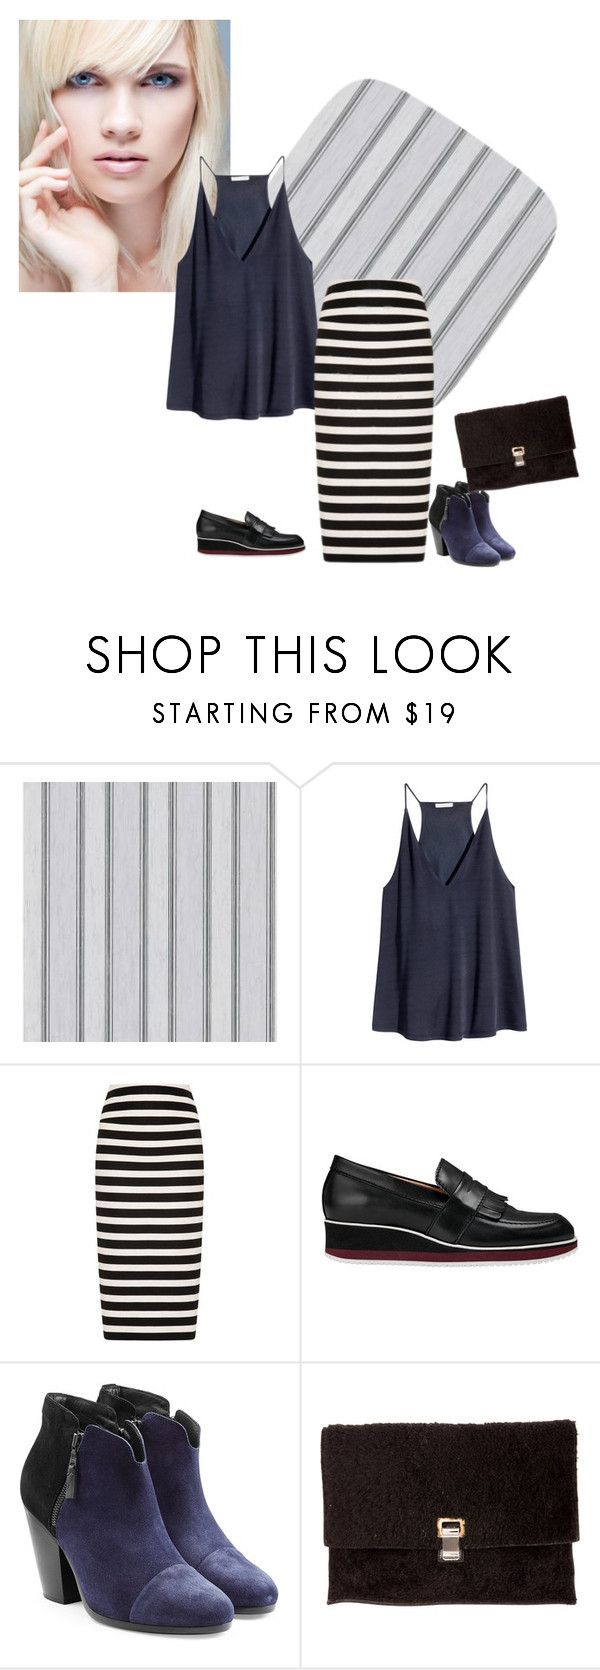 """""""stripe 8"""" by ajriyaf on Polyvore featuring H&M, Noon by Noor, Whistles, rag & bone and Proenza Schouler"""